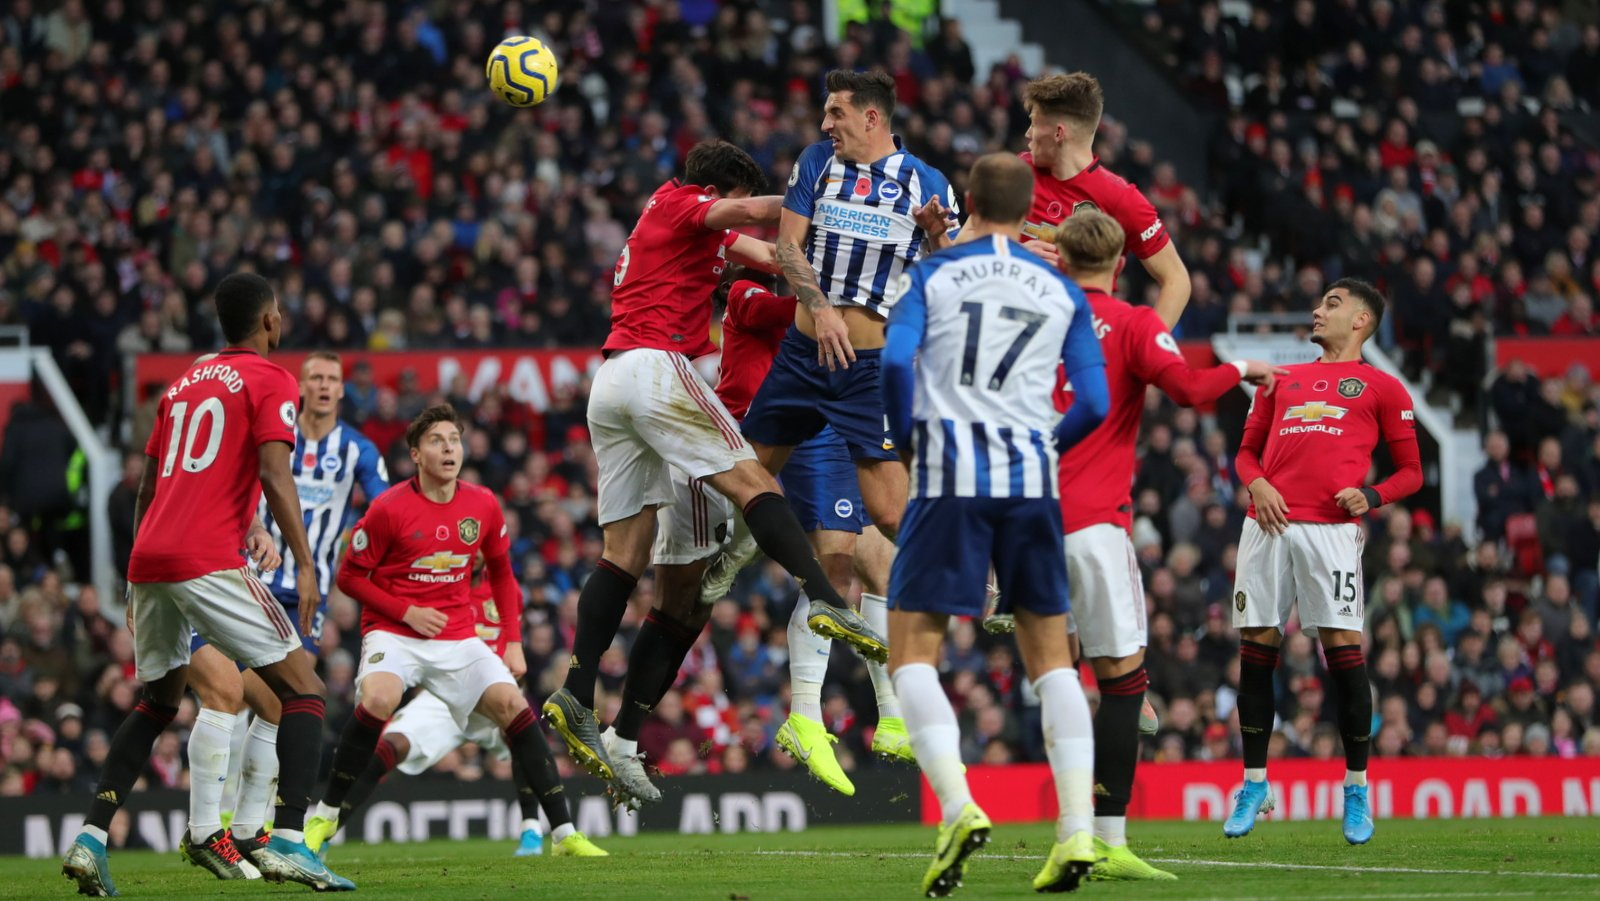 EPL: Balogun Benched As Brighton Lose 3-1 To Man United At Old Trafford